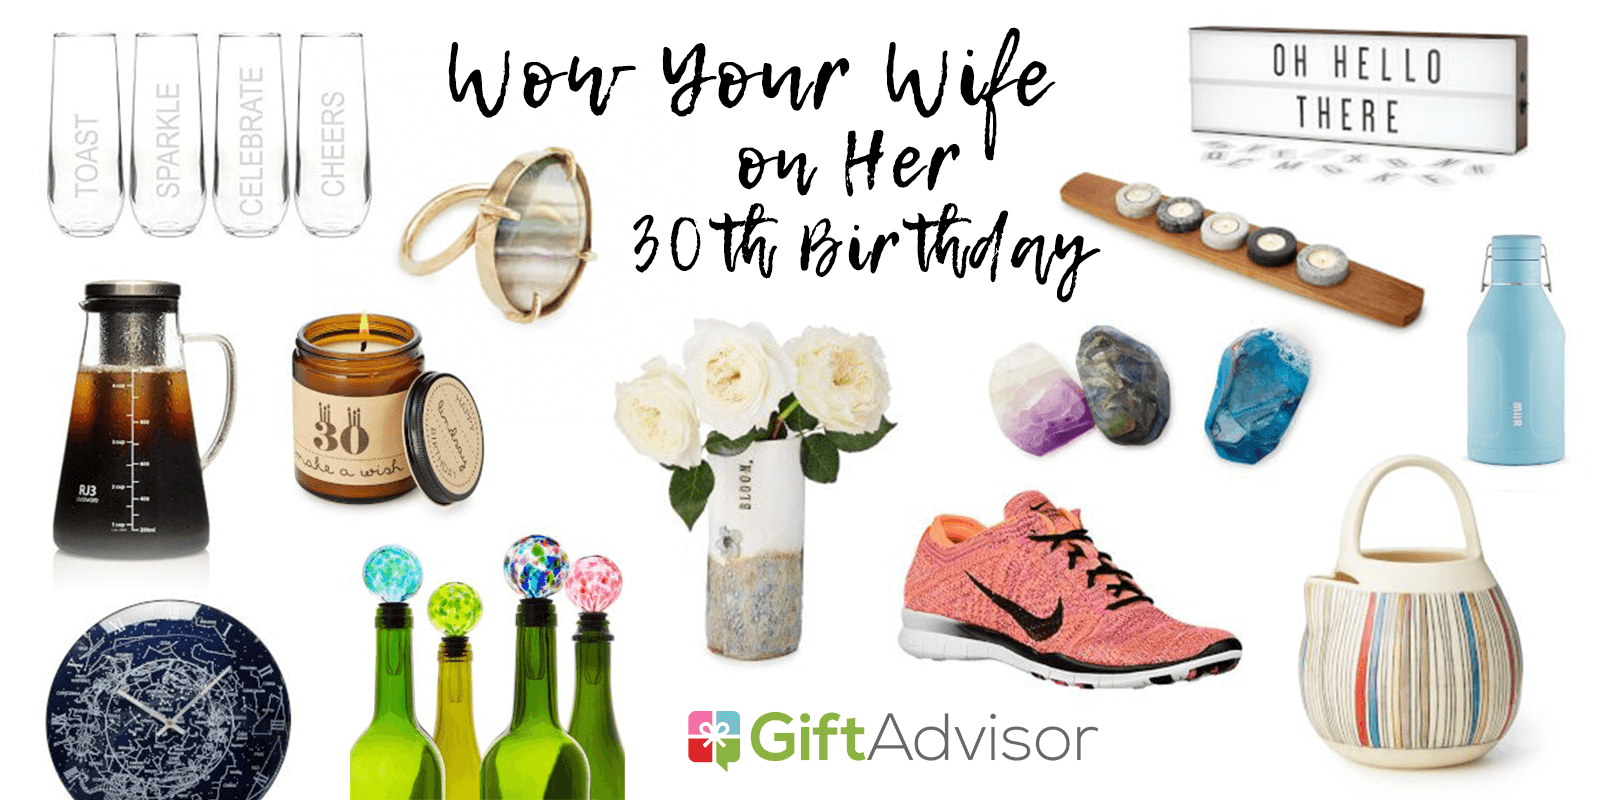 Gifts To Wow Your Wife On Her 30th Birthday